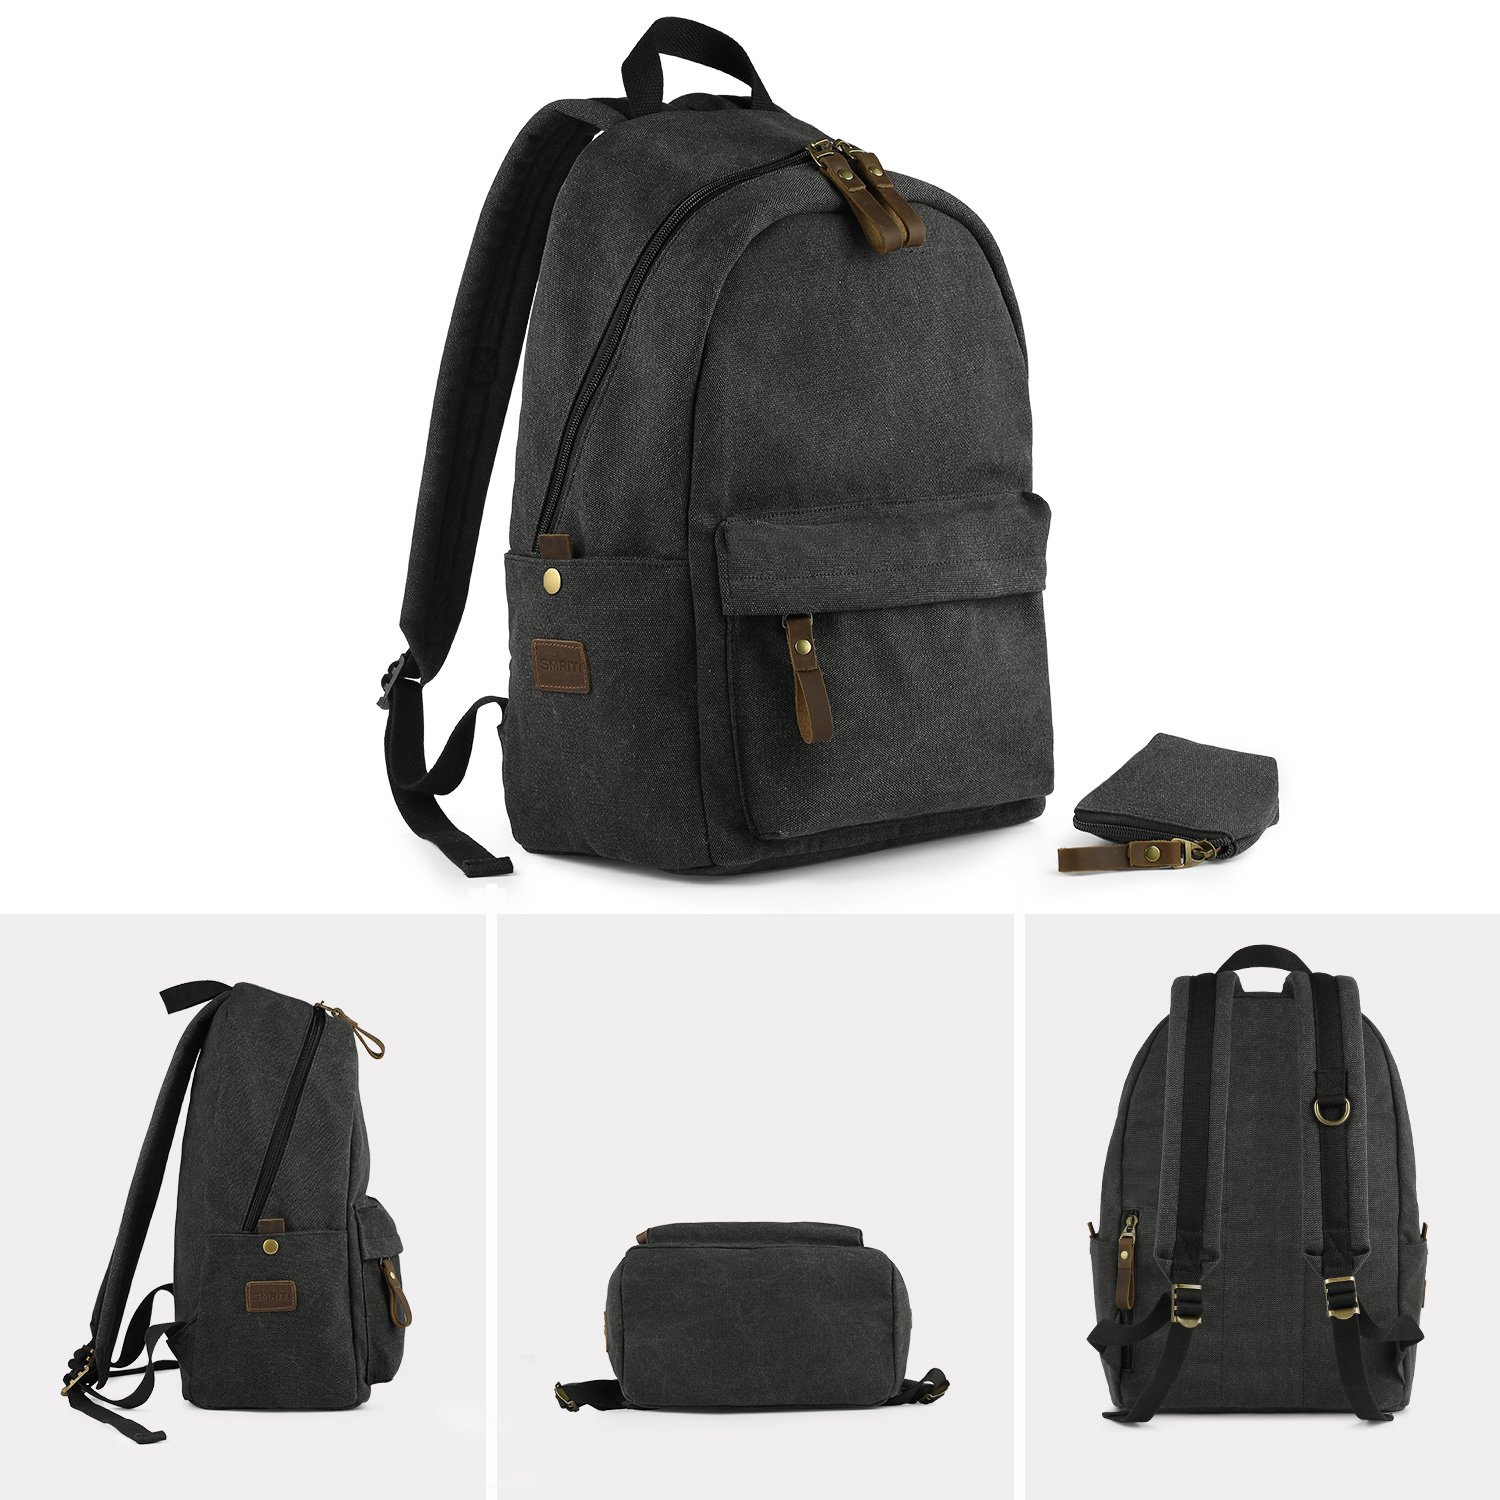 SMRITI Canvas 15.6 inch Laptop Backpack Casual Daypack for School Work and Travel - Dark Grey by SMRITI (Image #6)